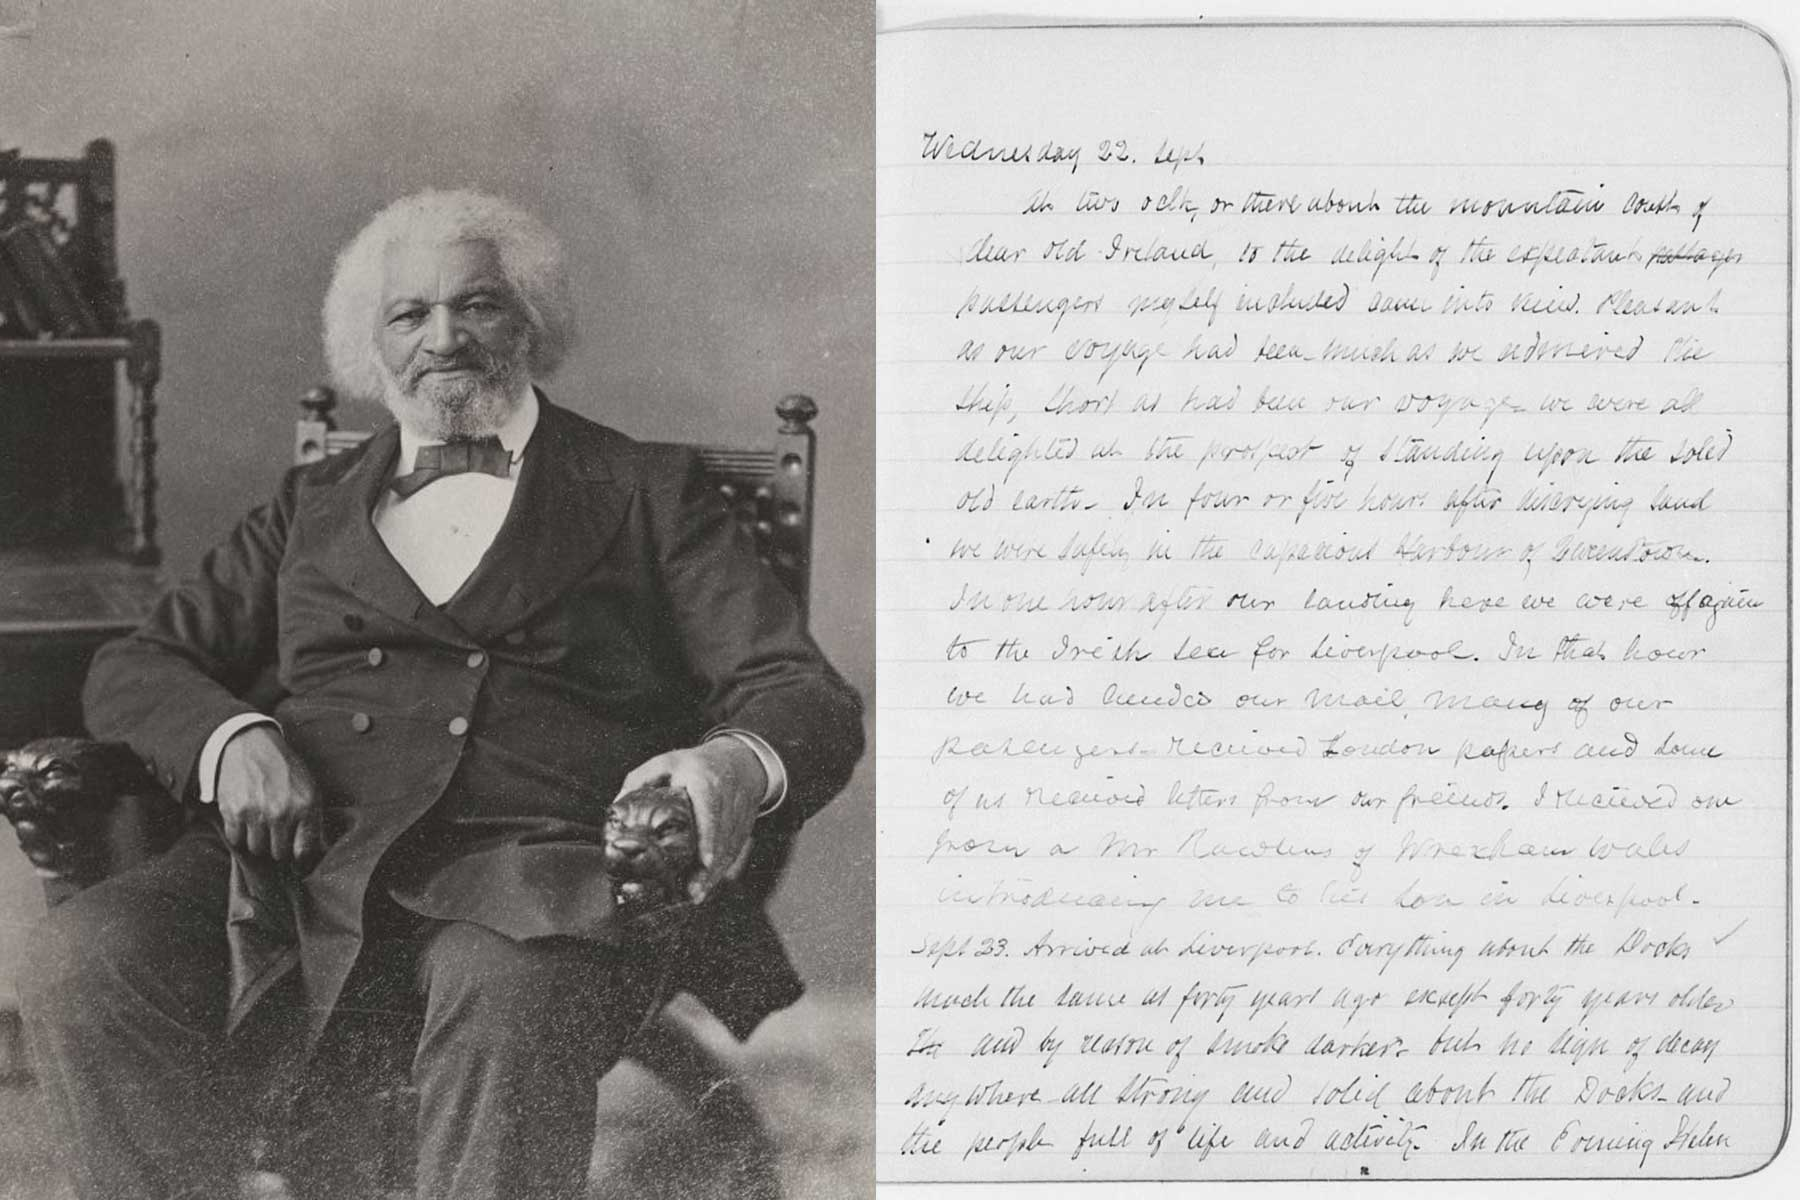 The Frederick Douglass Diary Entry from Travels and a Portrait of Frederick Douglass